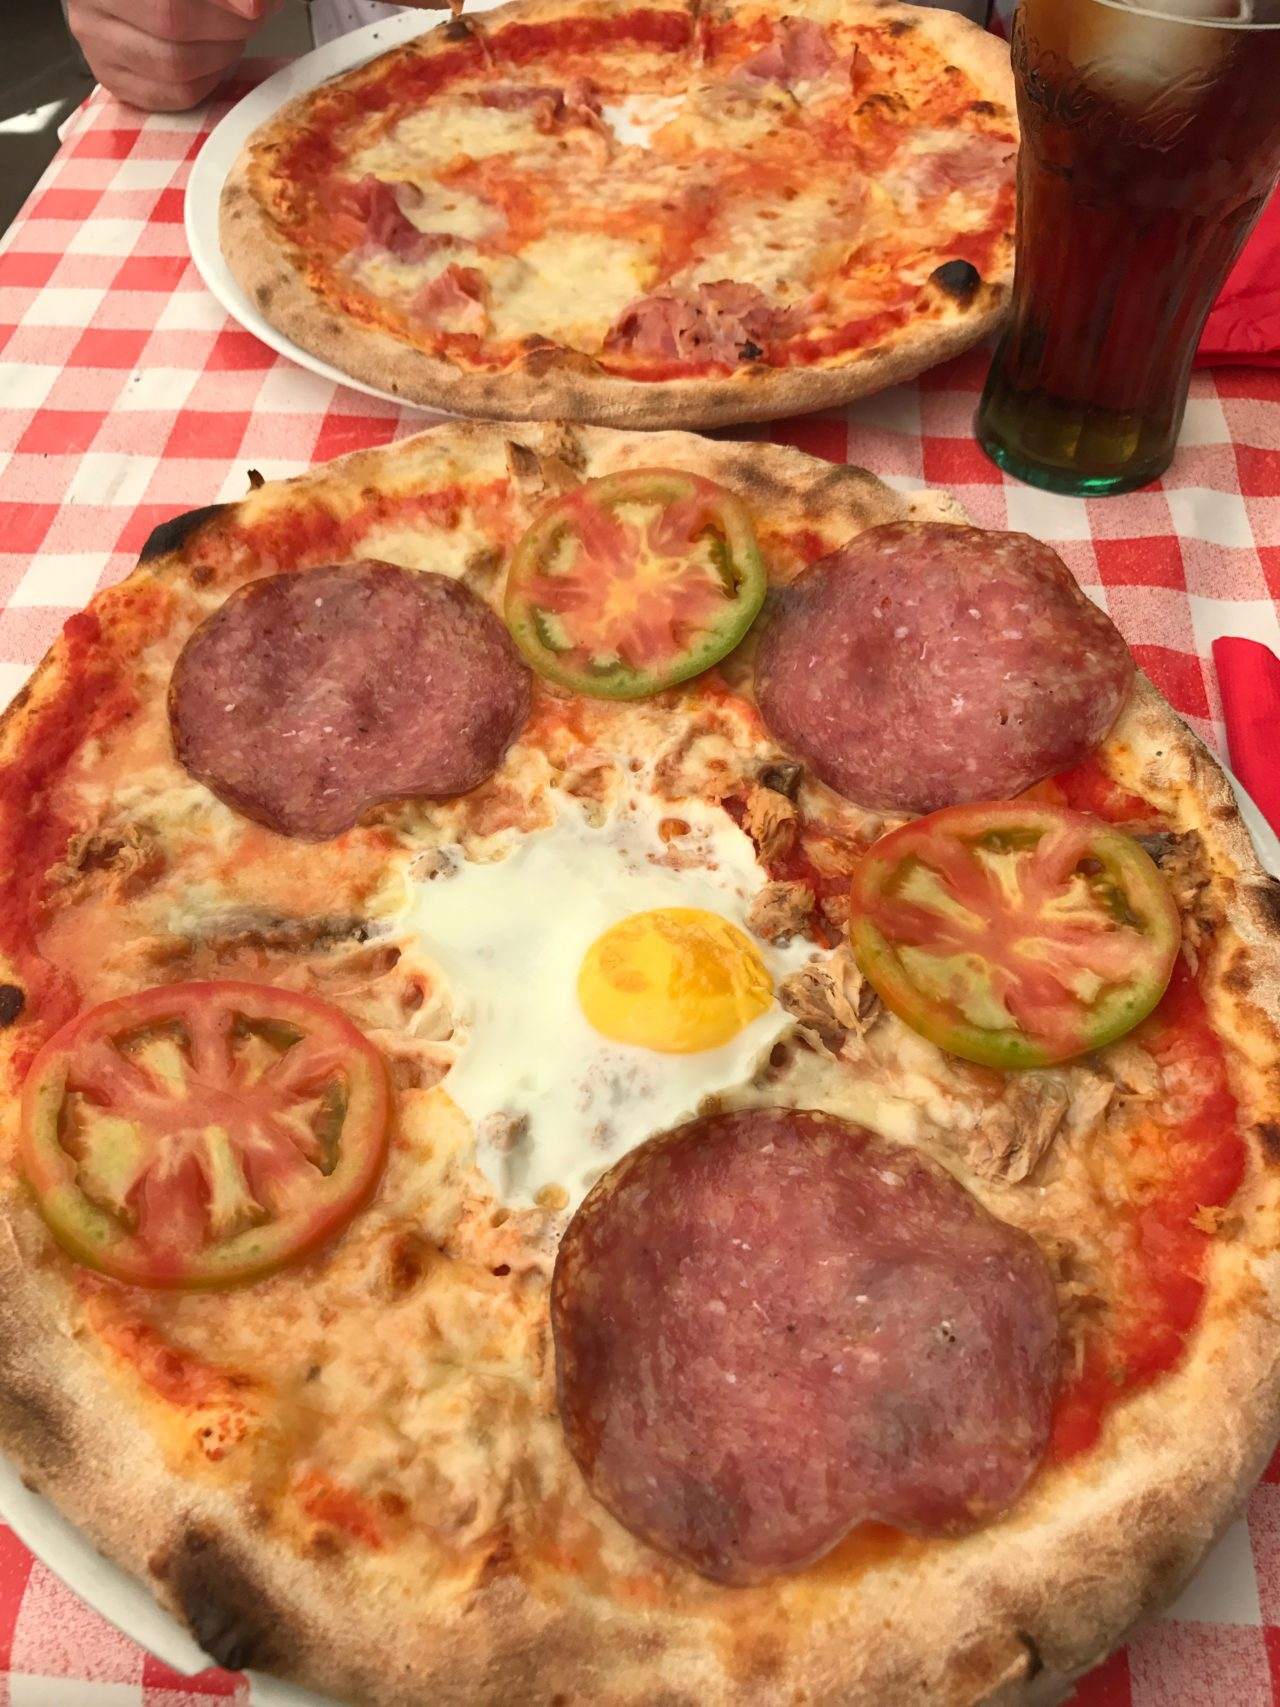 Pizzas With Salami And Eggs And Mozzarella On A Checkered Tablecloth With Drink